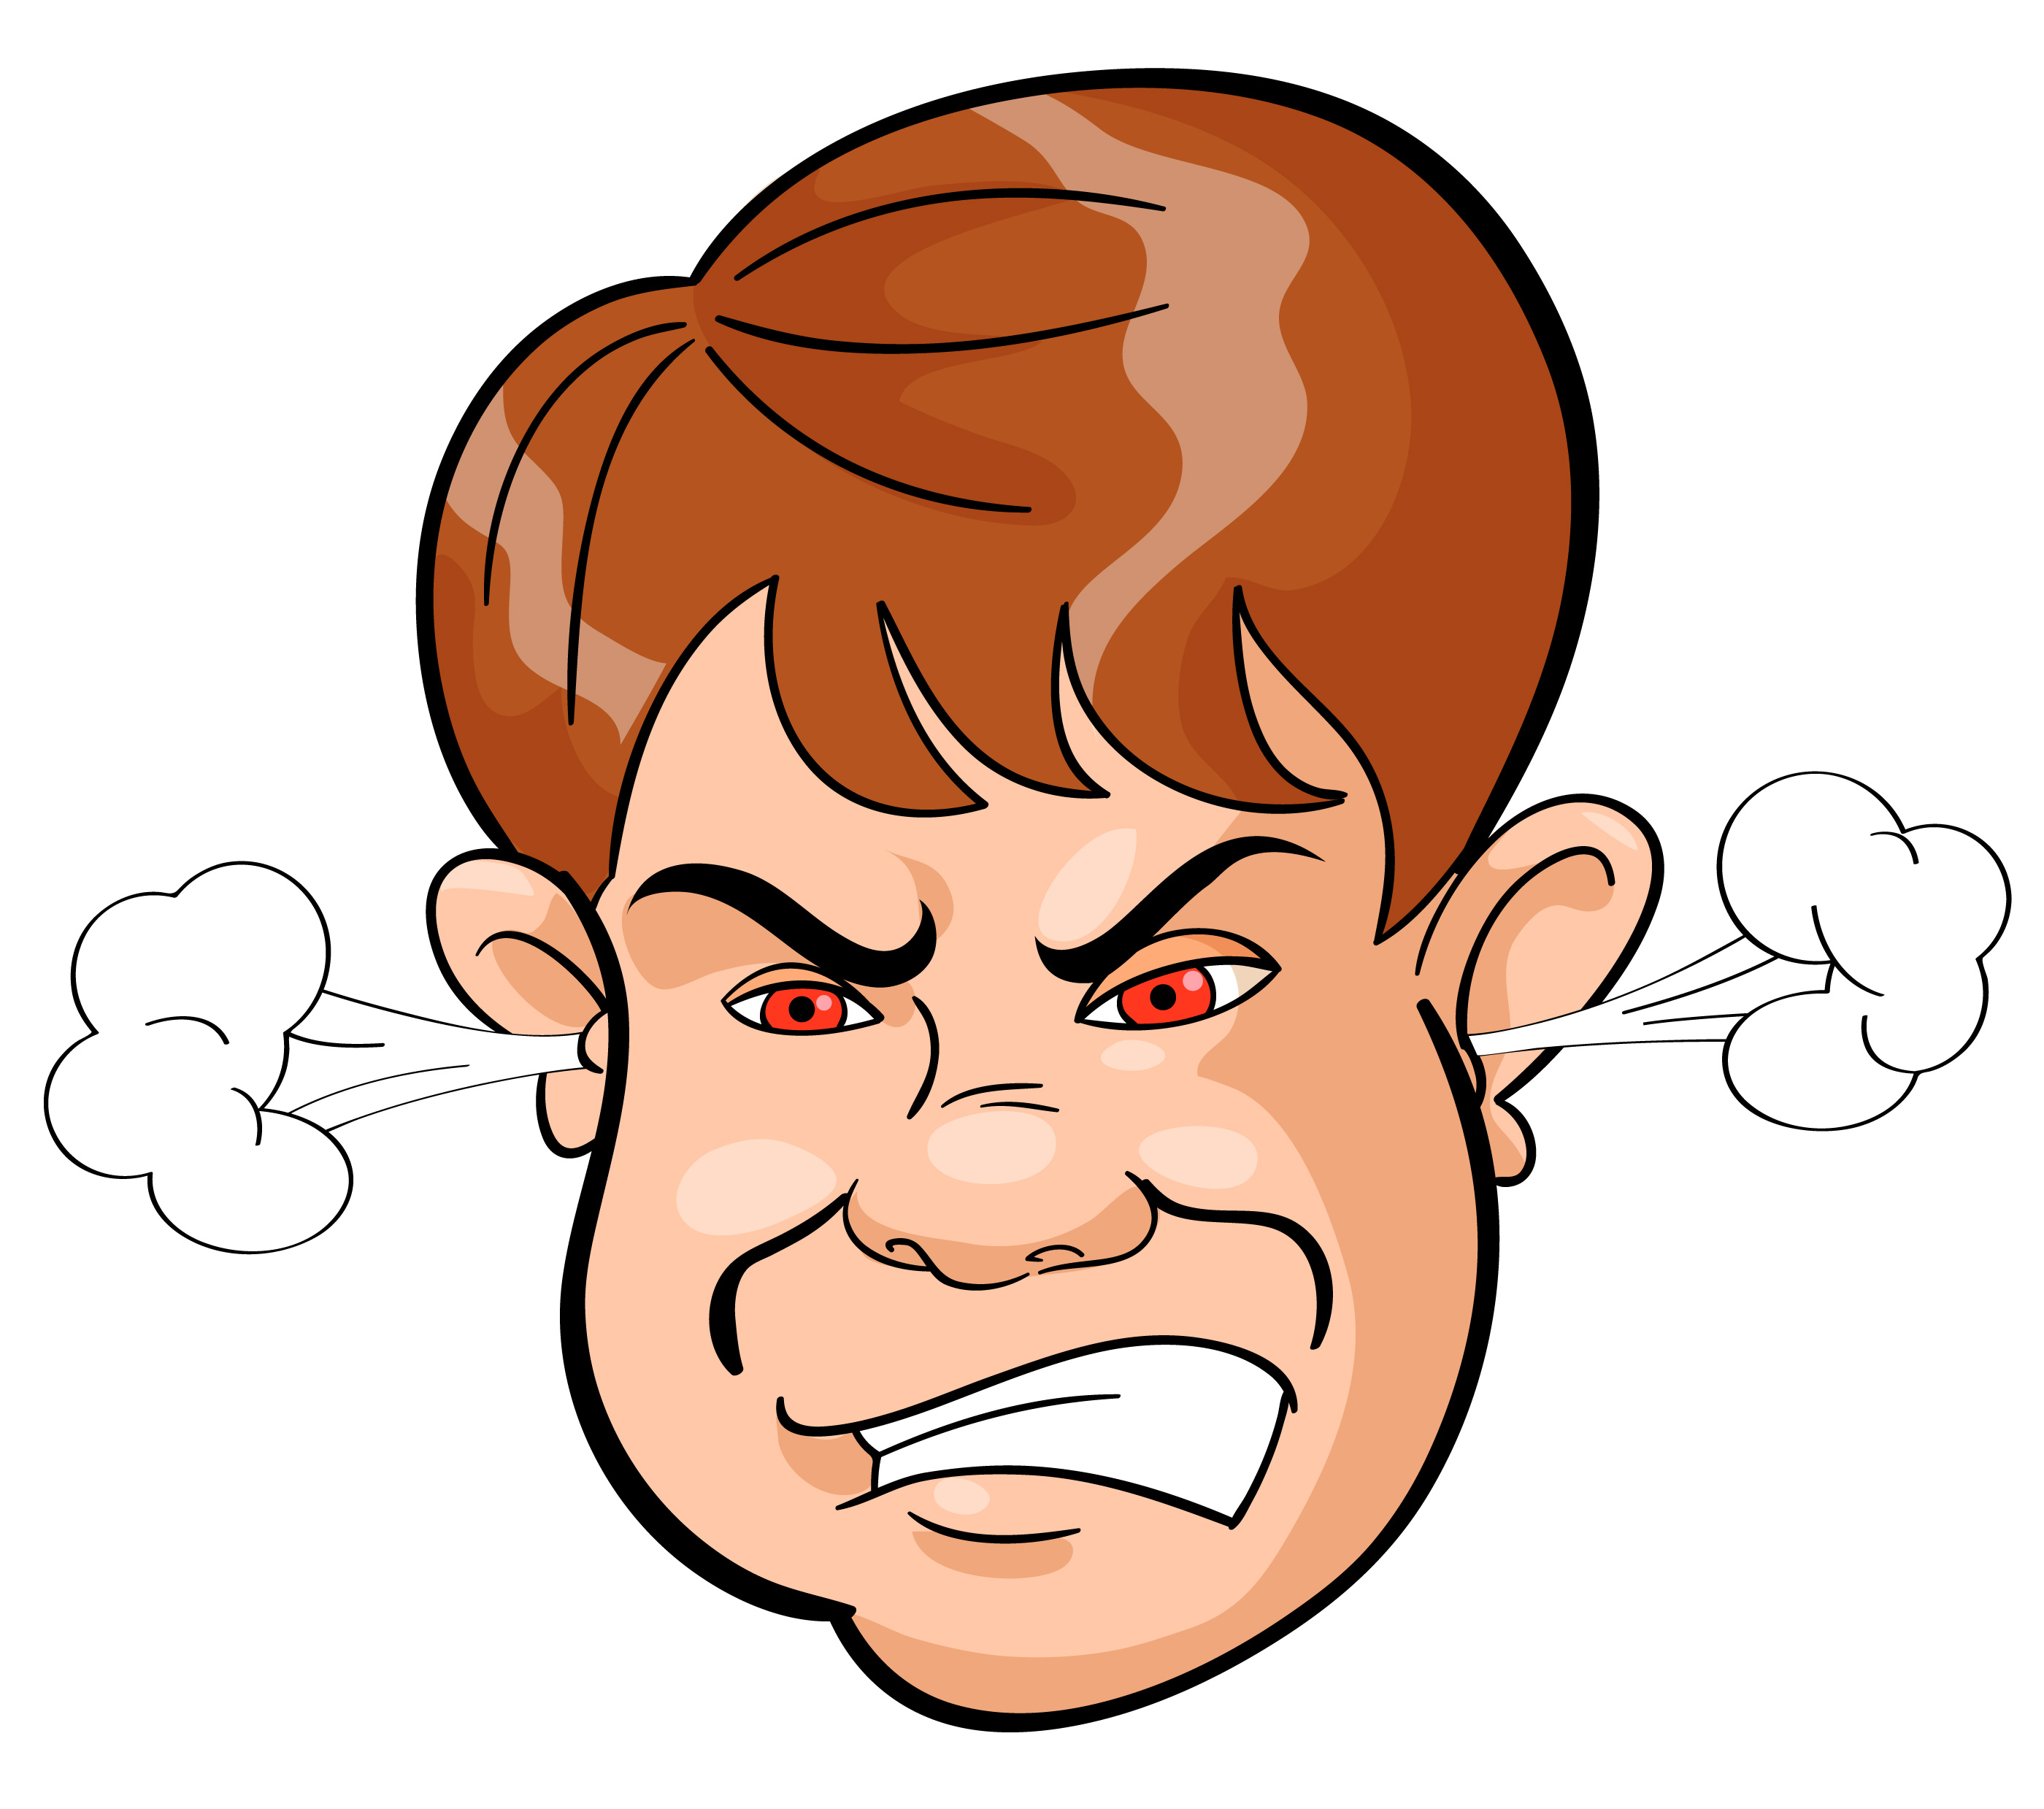 Anger clipart. Clip art pictures panda